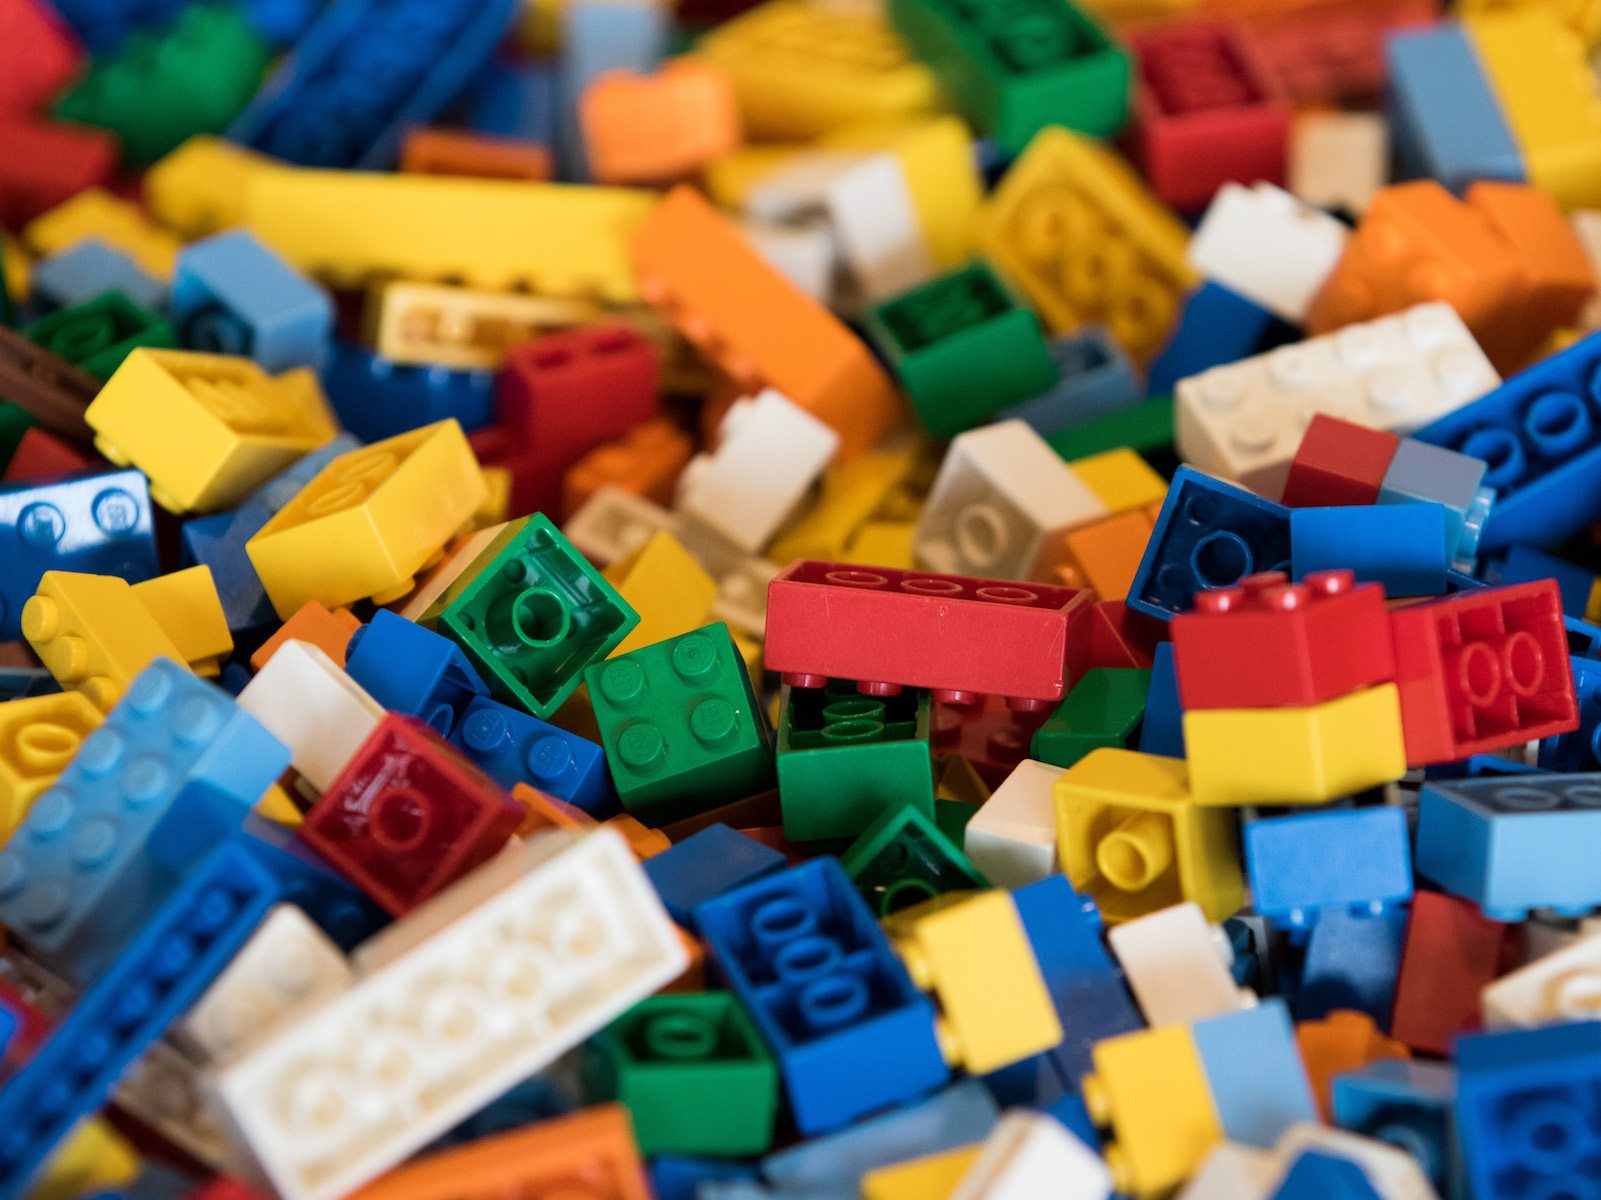 A Bar Built Out of Lego Bricks Is Rumored to Be Opening in London